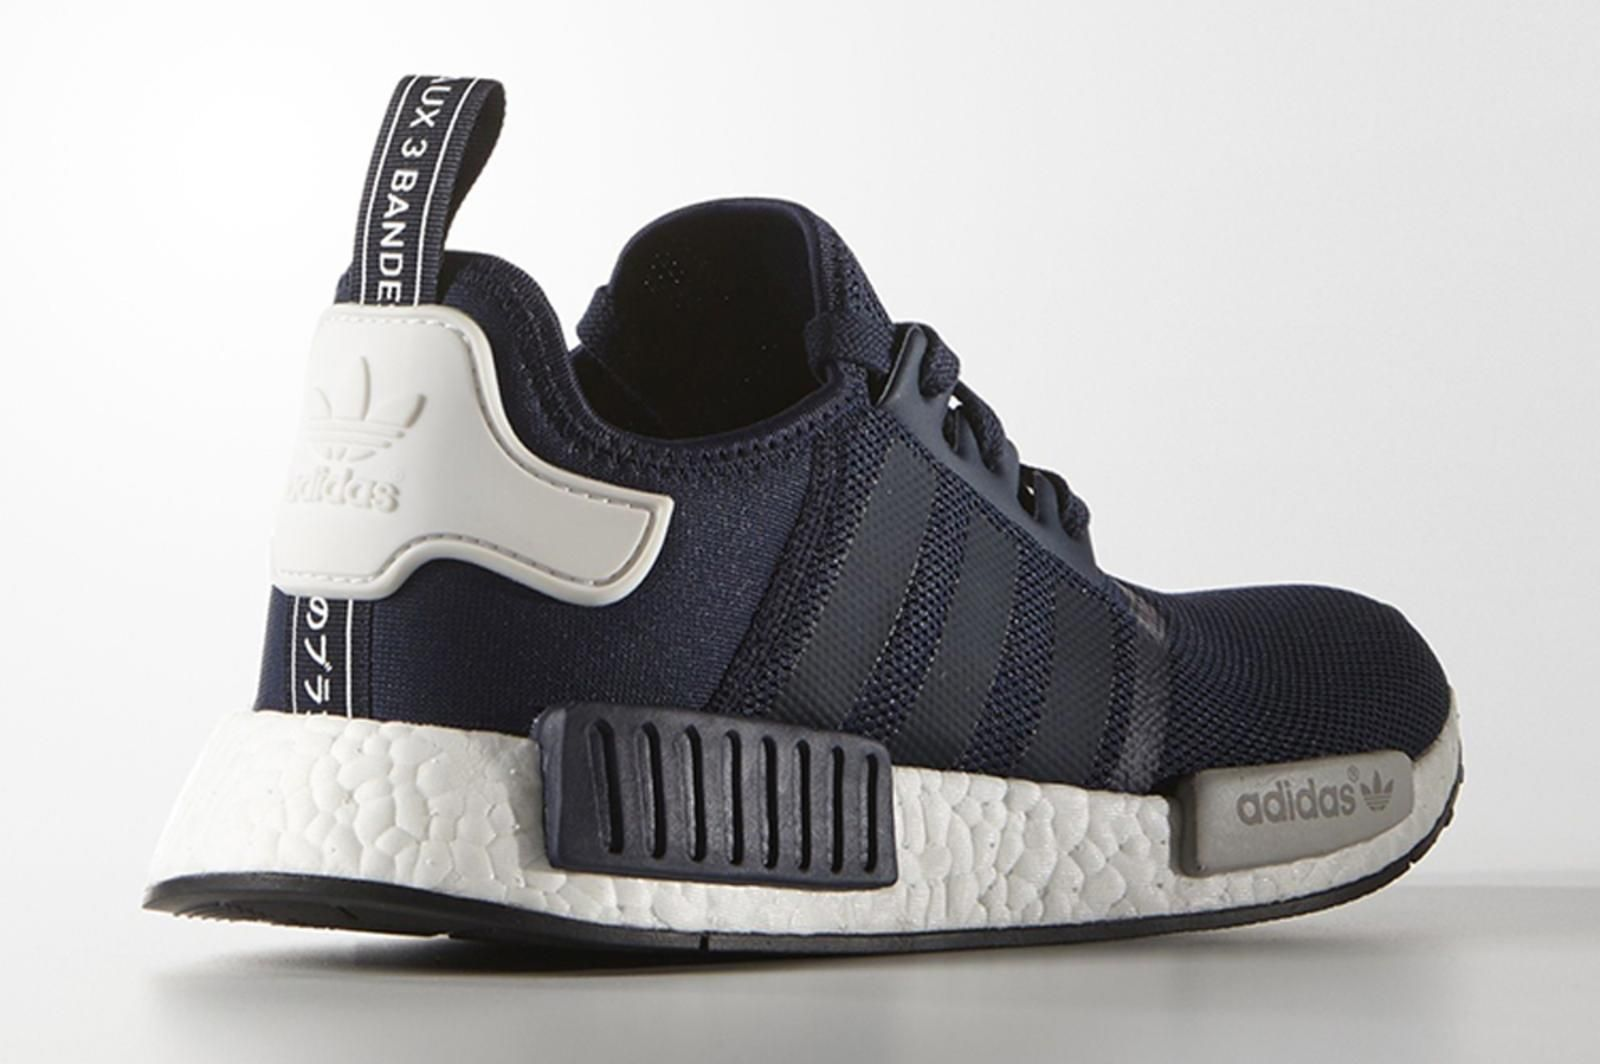 nmd runners adidas adidas kids shoes canada